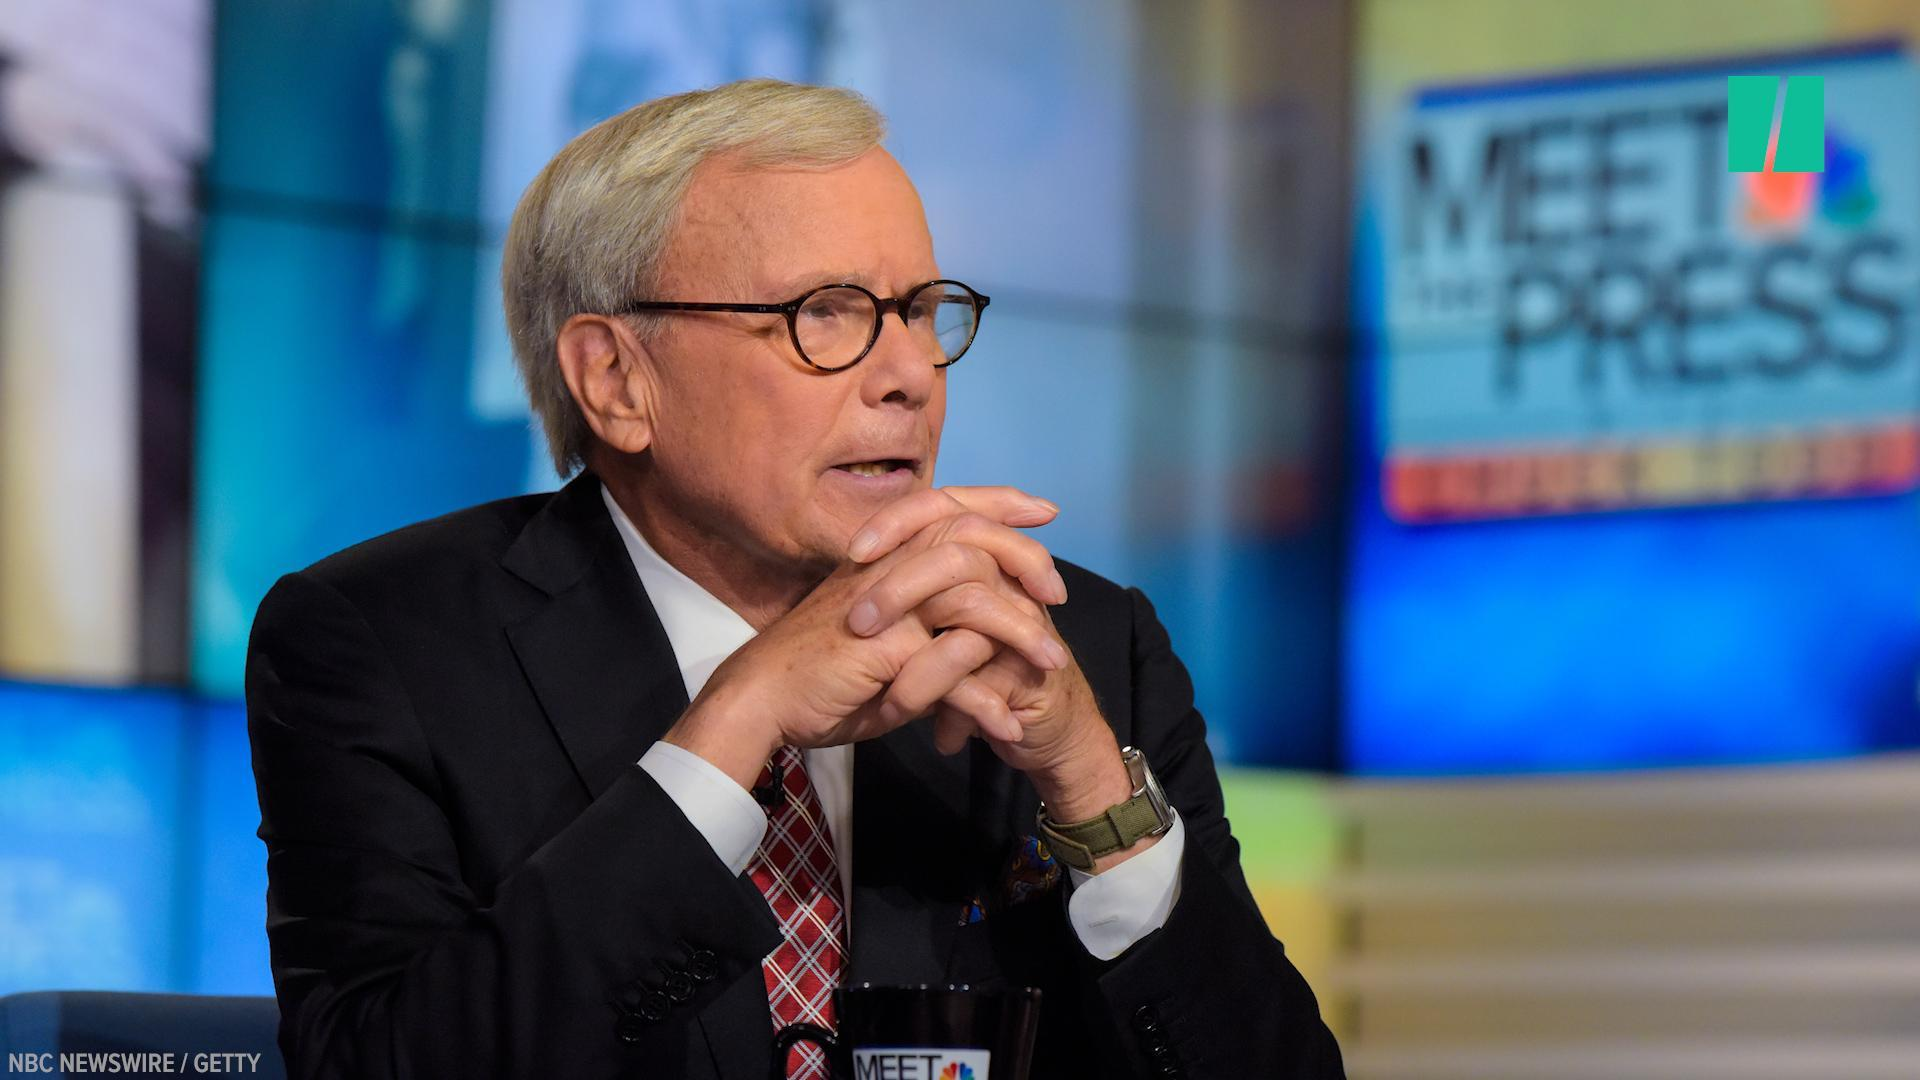 2 Women Accuse Tom Brokaw Of Sexual Harassment In The '90s